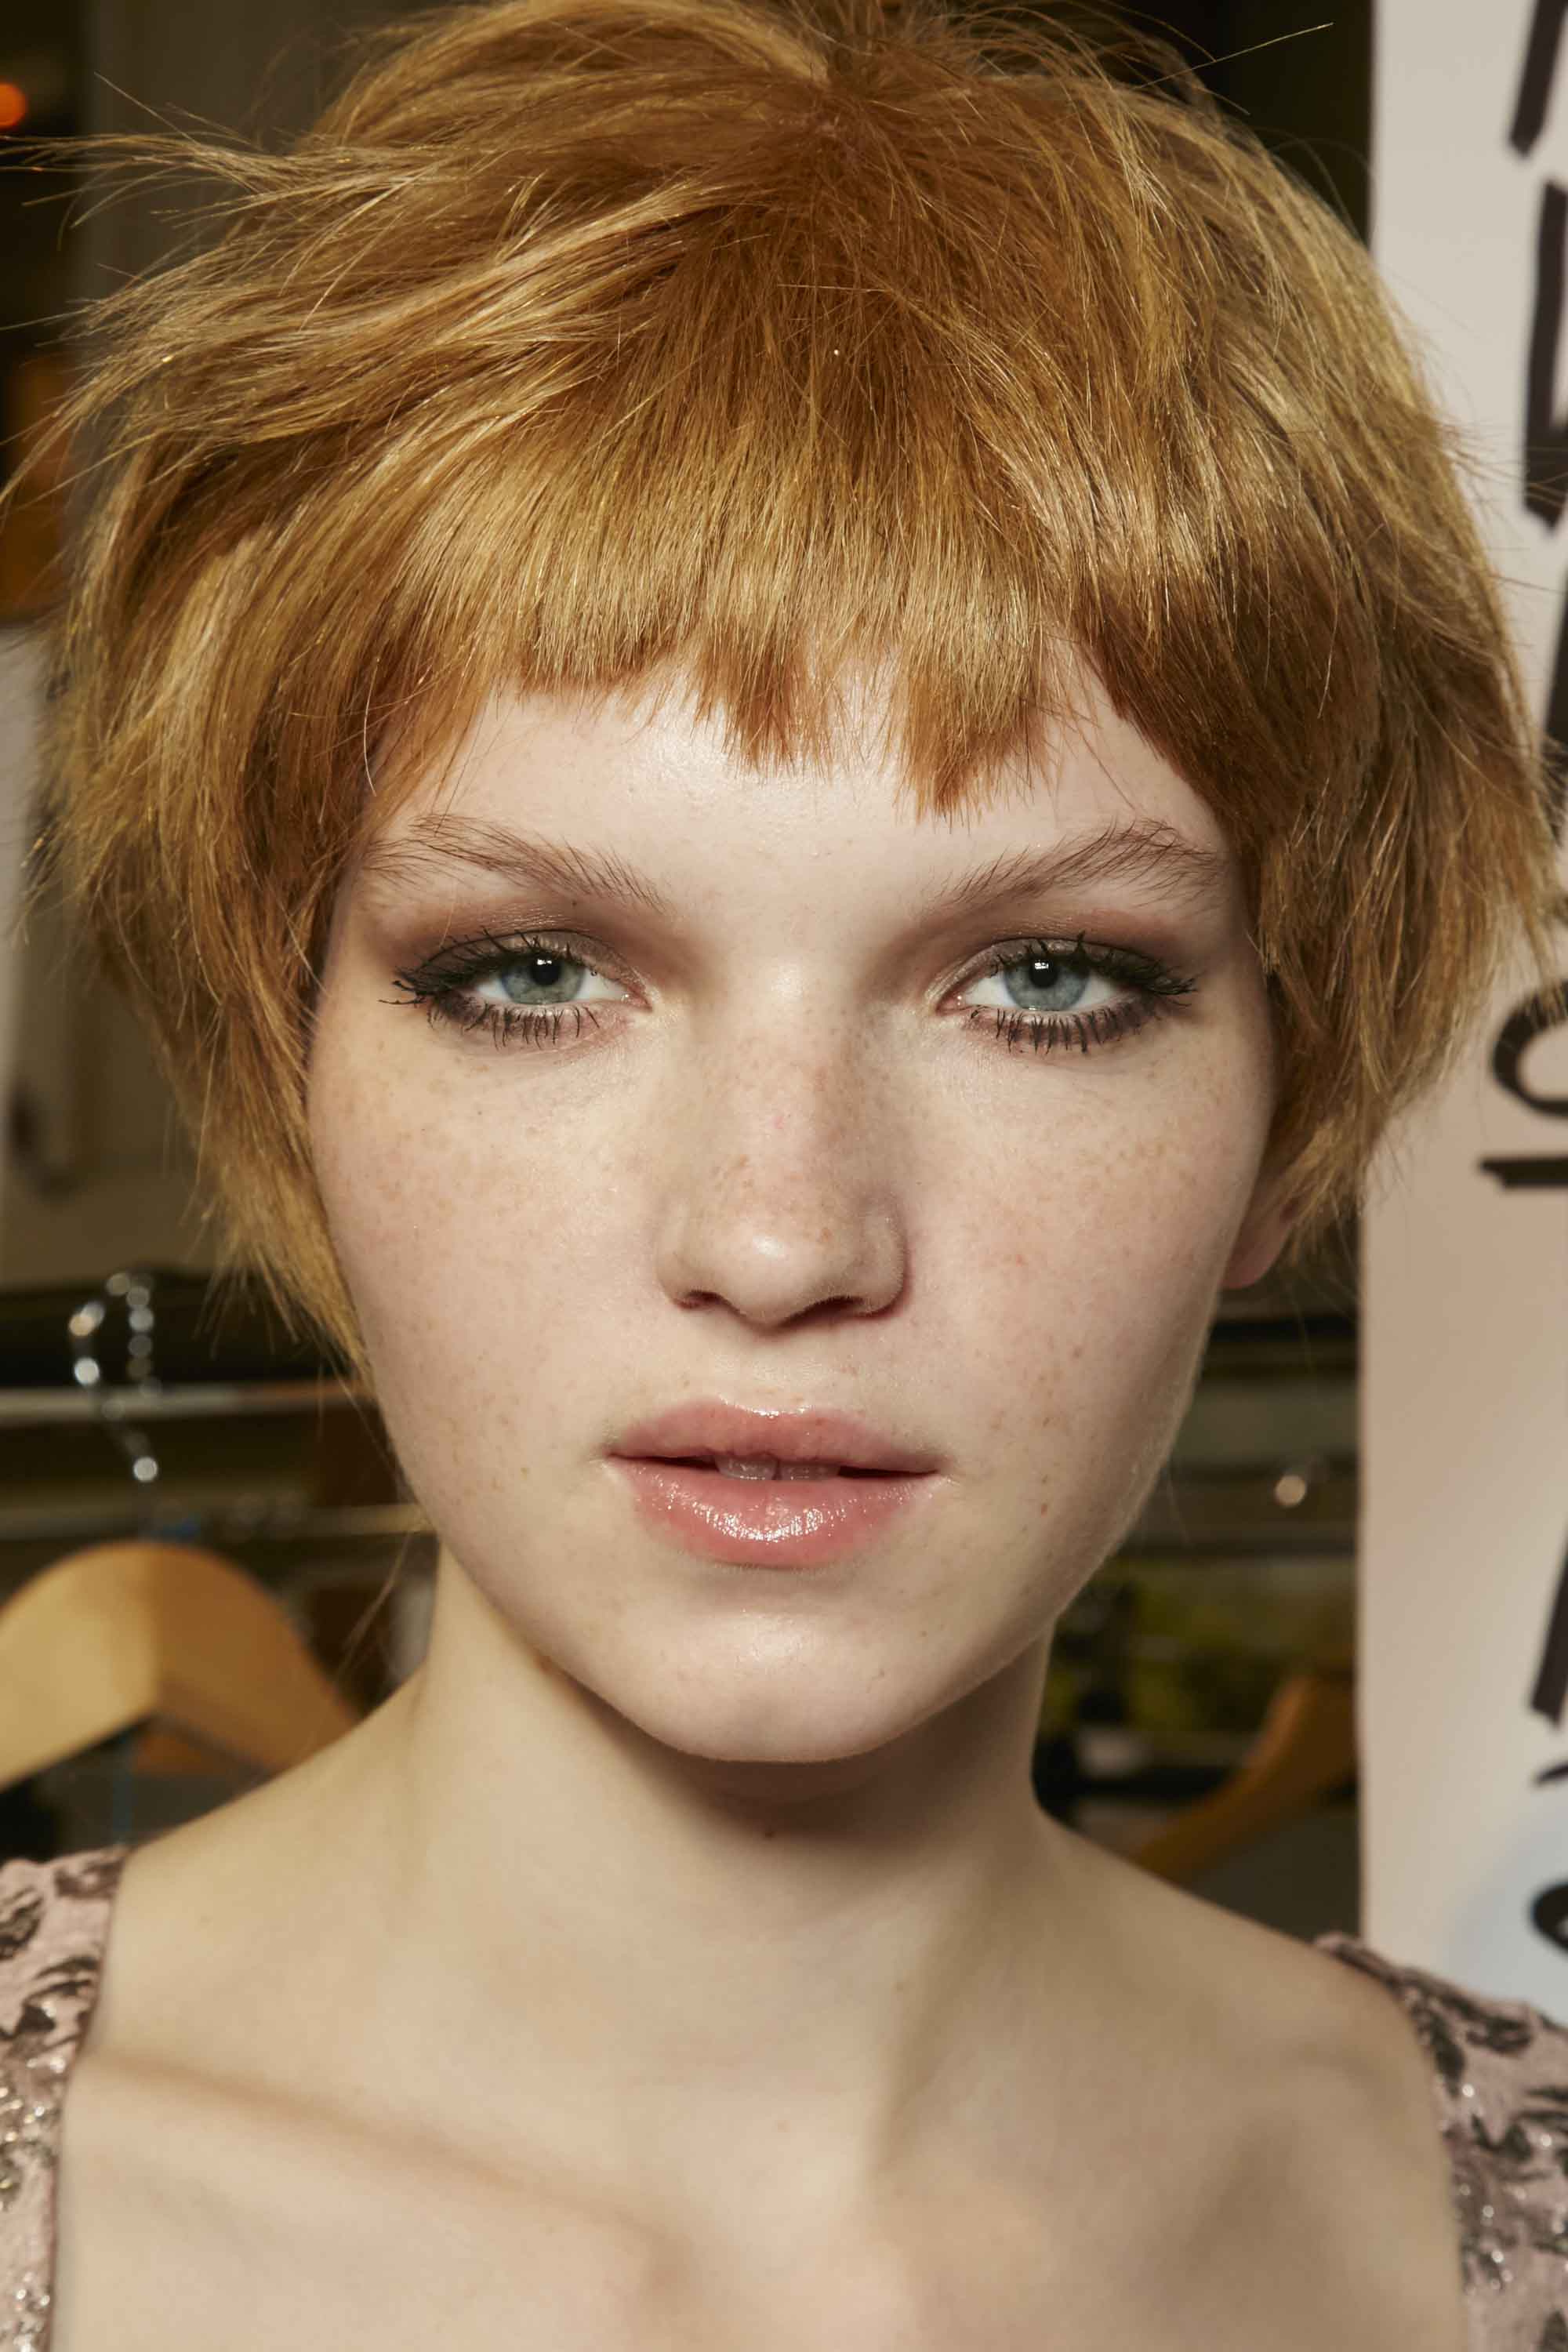 5 Cool Ways To Wear Short Bangs – Plus Need To Know Styling Tips With Ladies Short Hairstyles With Fringe (View 12 of 25)